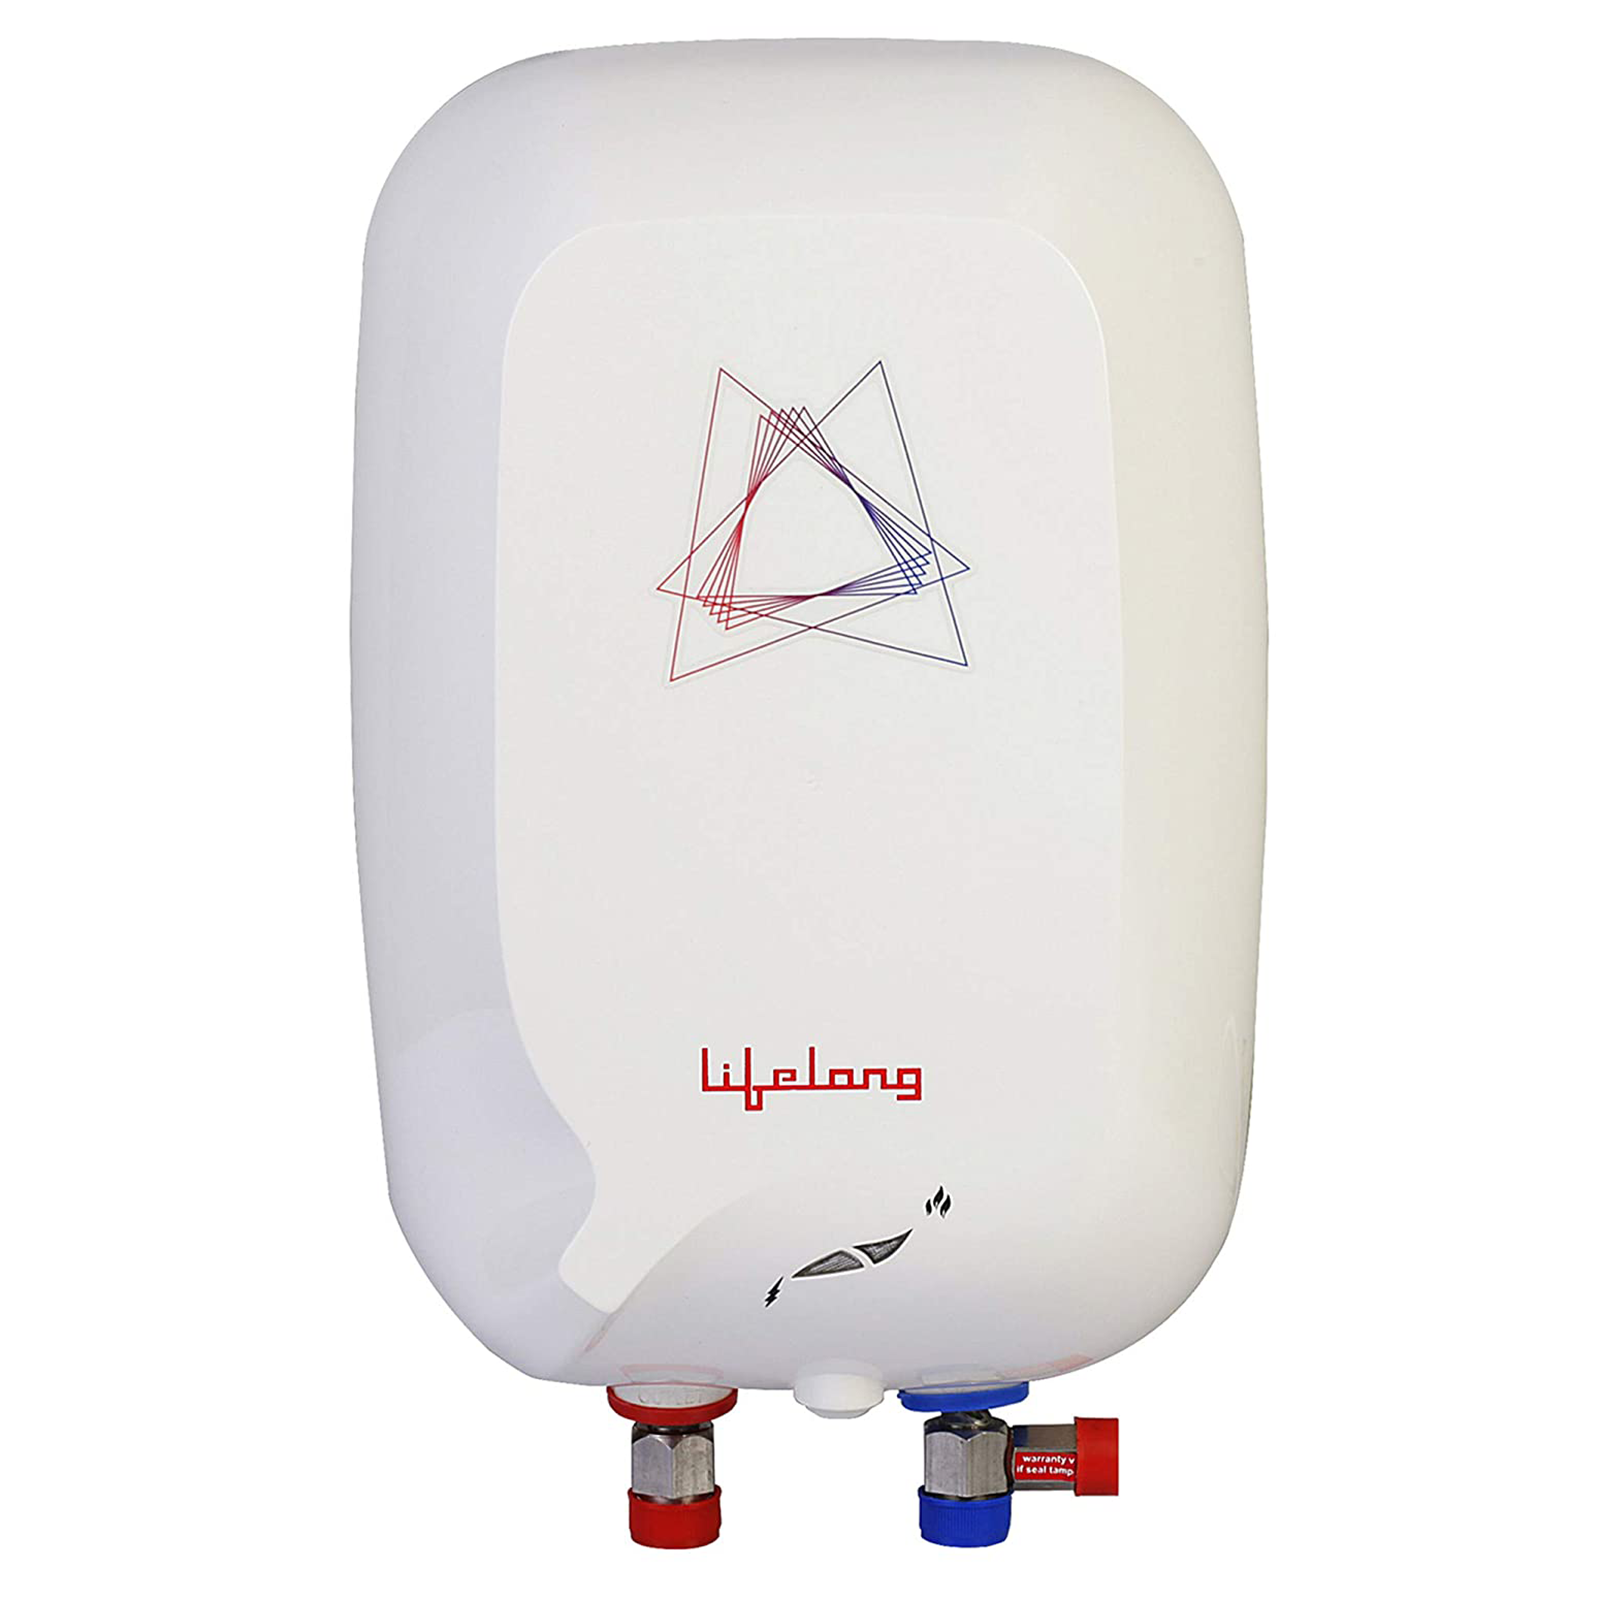 Lifelong Flash 3 Litres Instant Water Geyser (3000 Watts, LLWH106, White)_1